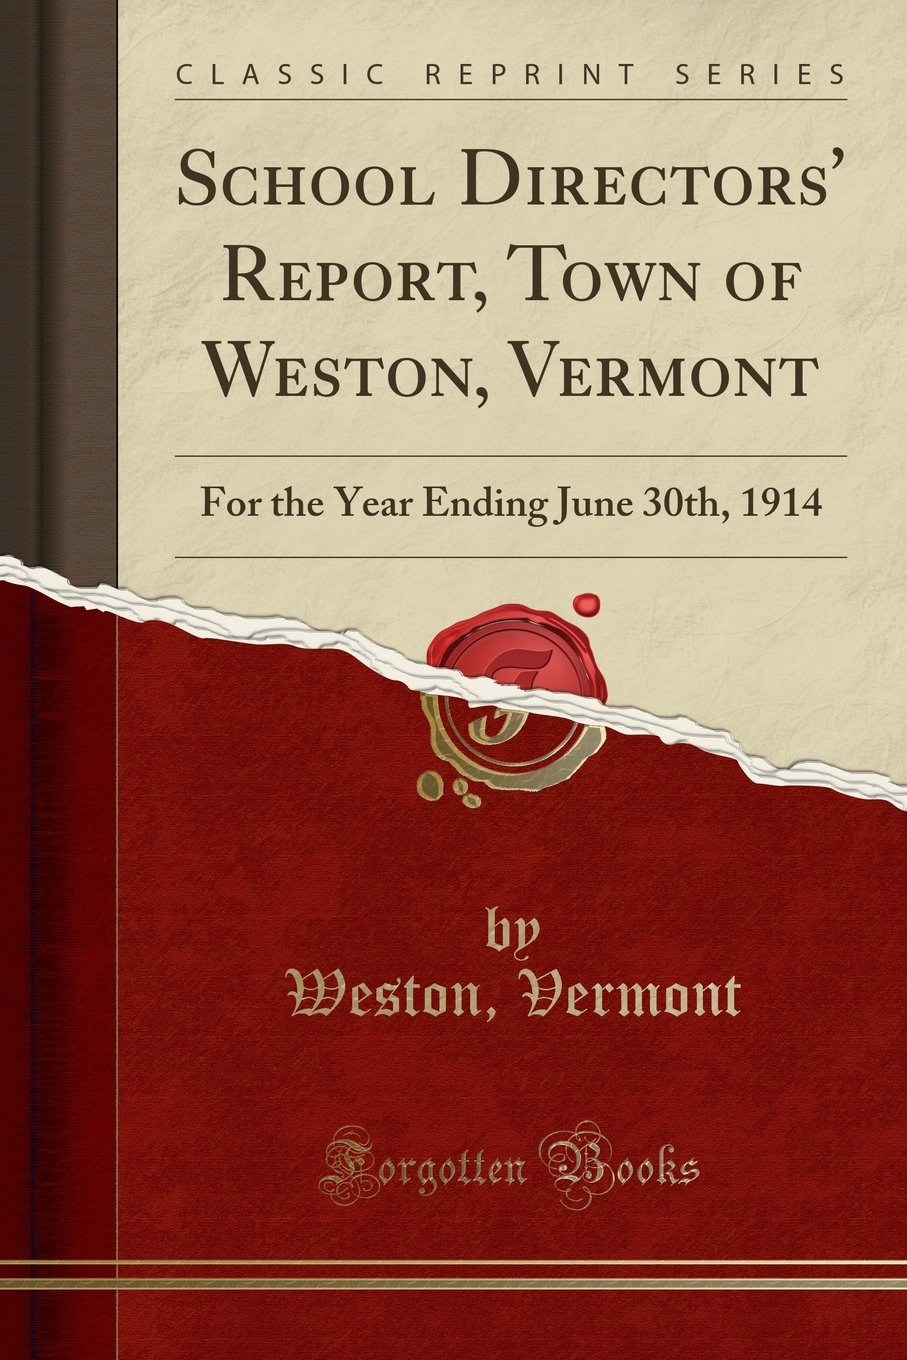 Download School Directors' Report, Town of Weston, Vermont: For the Year Ending June 30th, 1914 (Classic Reprint) PDF